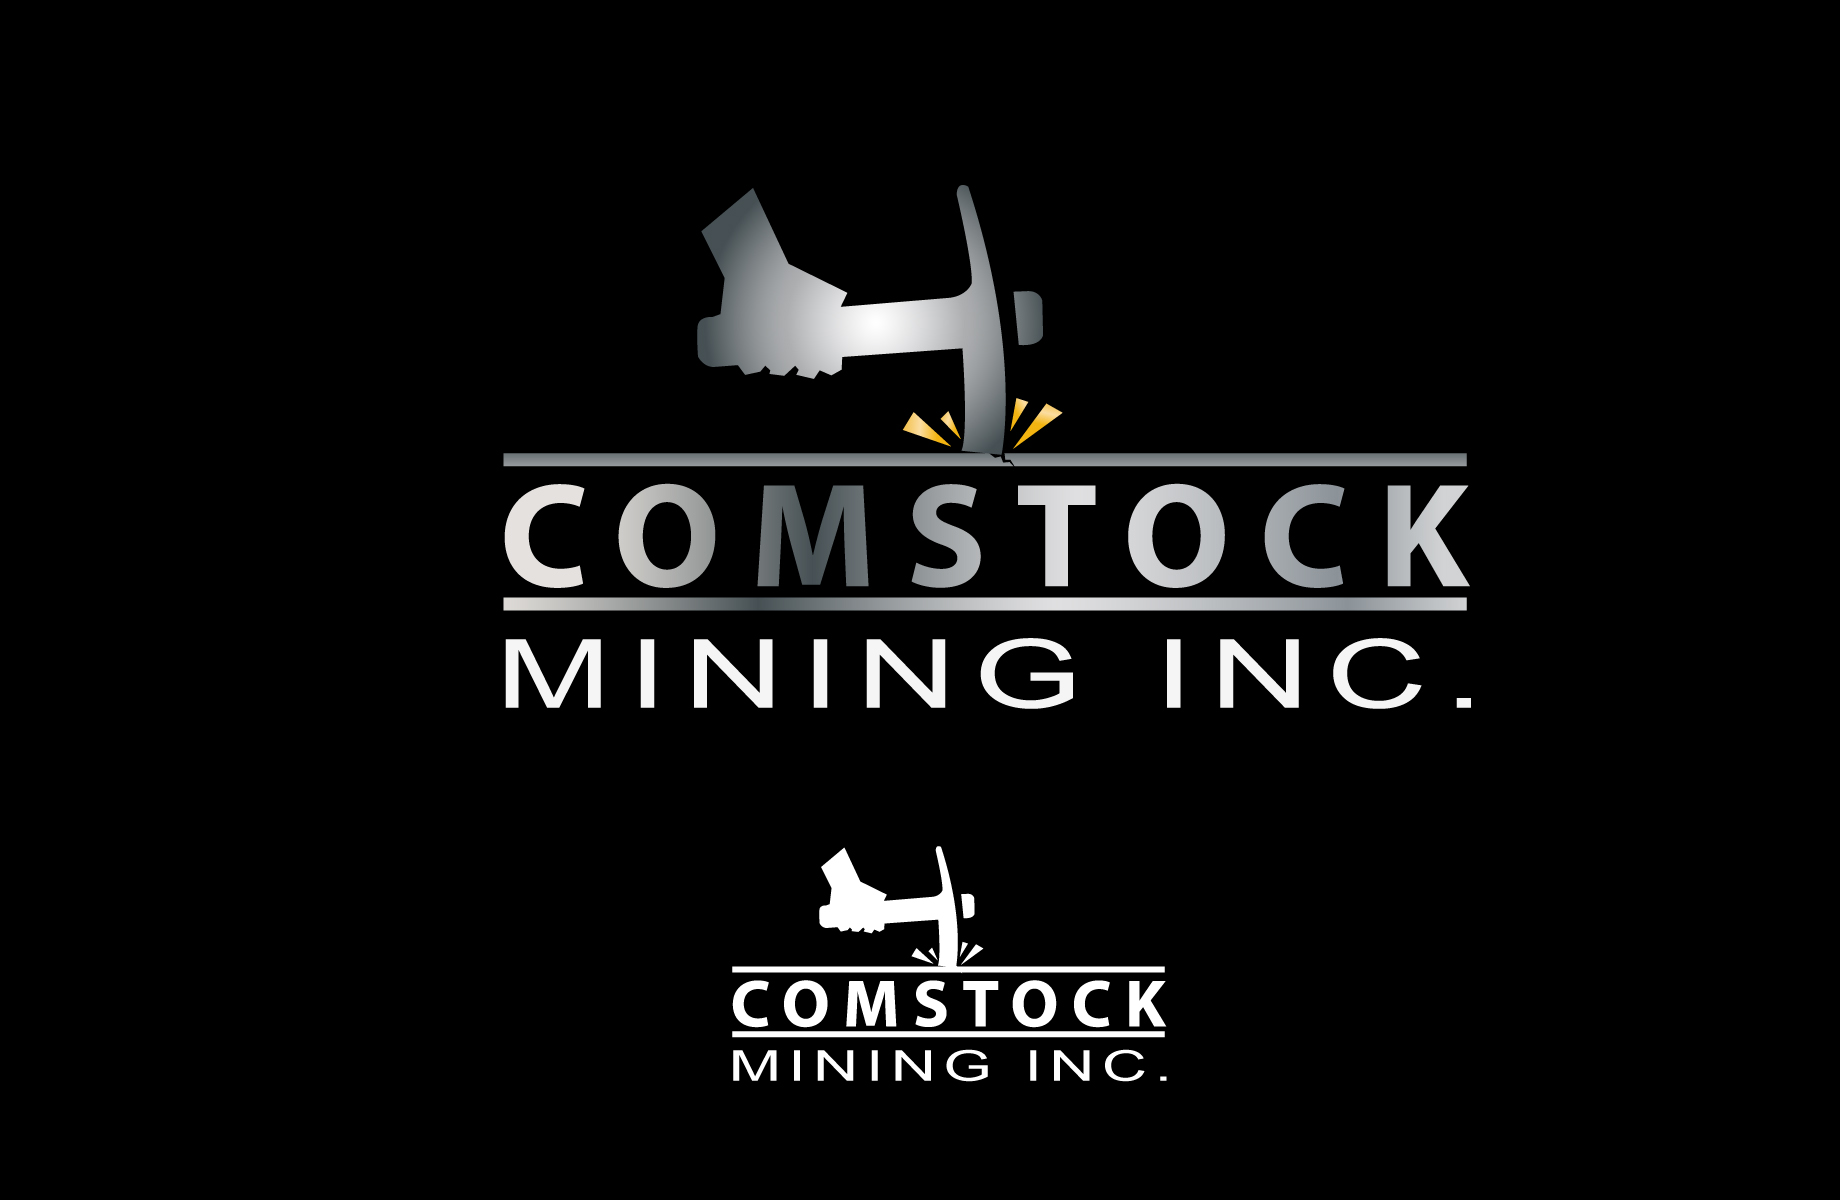 Logo Design by Jan Chua - Entry No. 121 in the Logo Design Contest Captivating Logo Design for Comstock Mining, Inc..